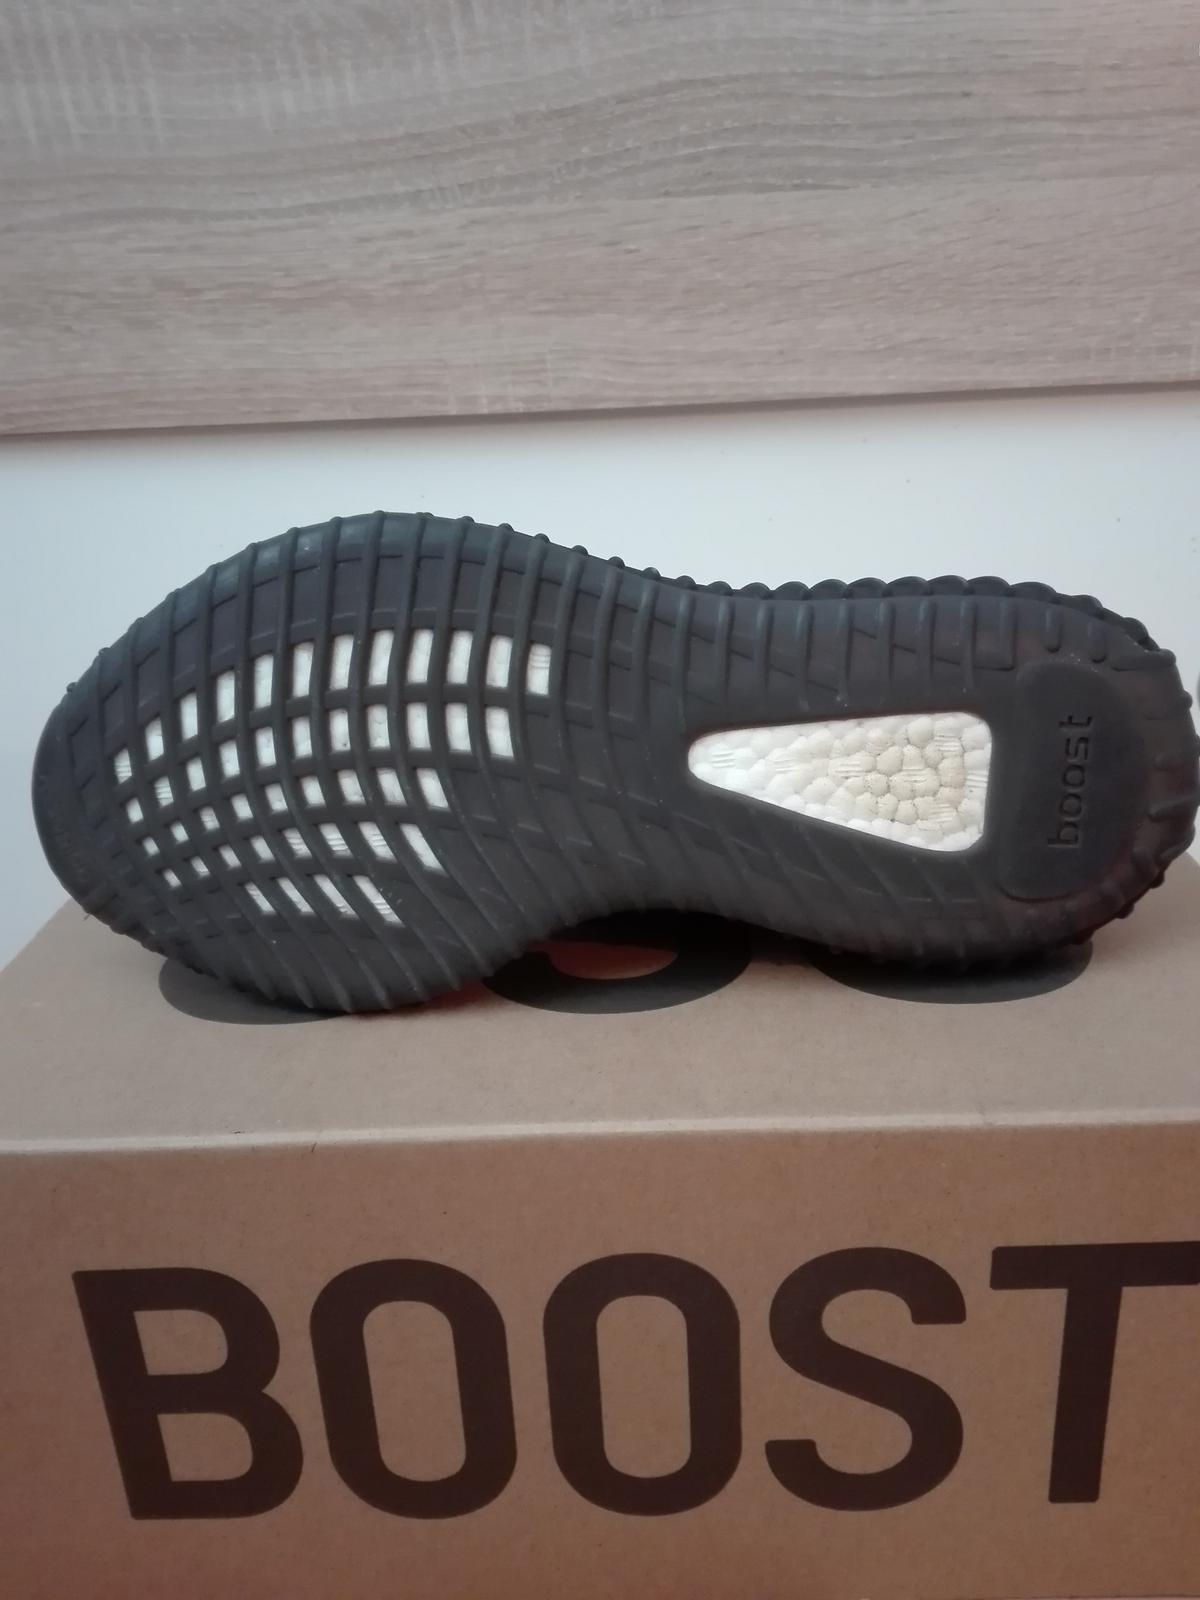 cheapest on sale premium selection Adidas Yeezy Boost 350 v2 Oreo Gr. 43 1/3 in 4560 Kirchdorf ...